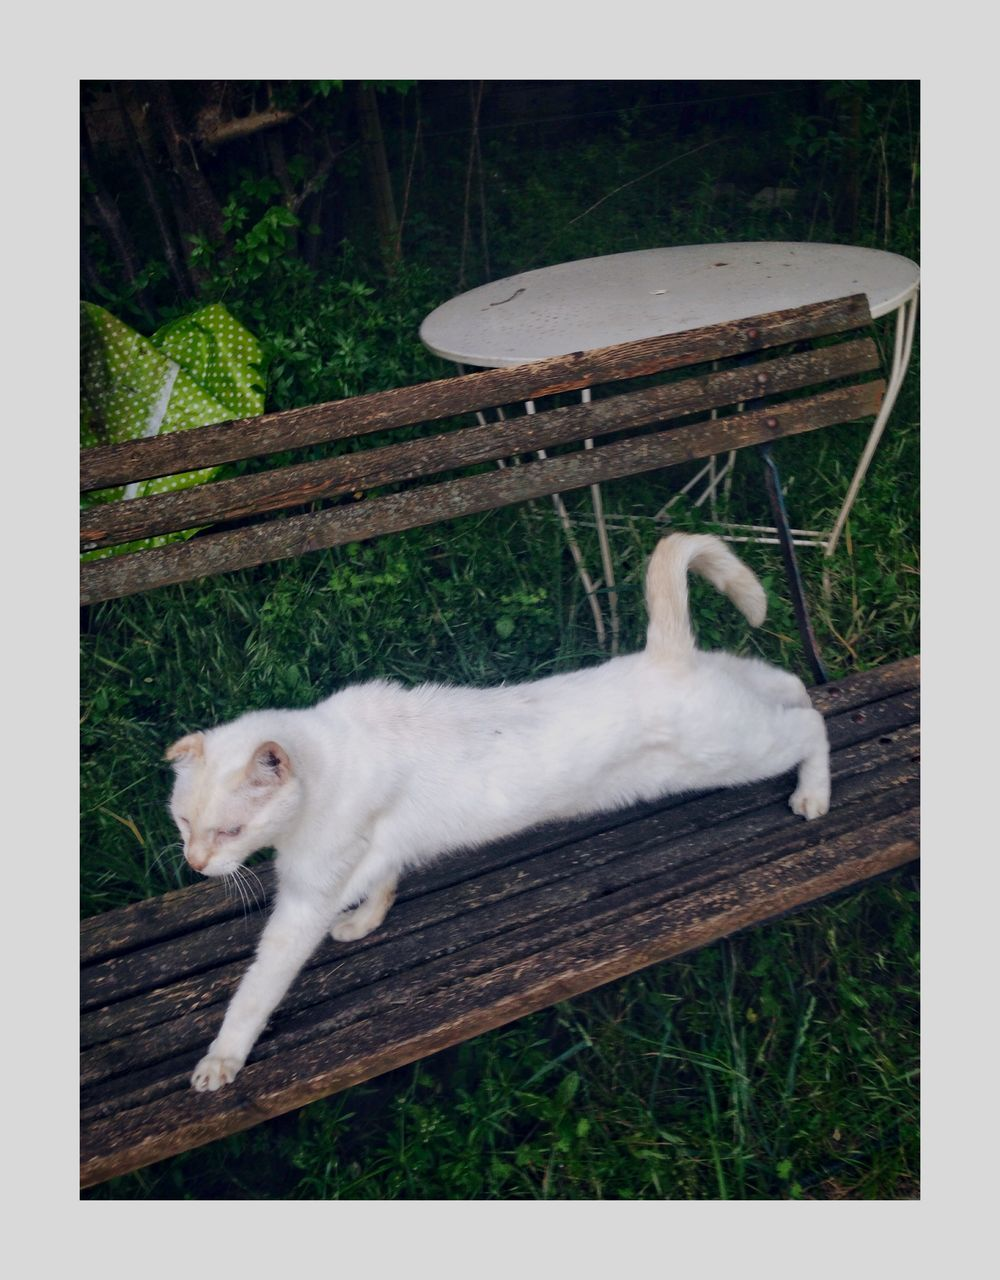 animal, animal themes, mammal, one animal, domestic, transfer print, pets, domestic animals, domestic cat, cat, feline, vertebrate, auto post production filter, no people, plant, relaxation, nature, day, grass, white color